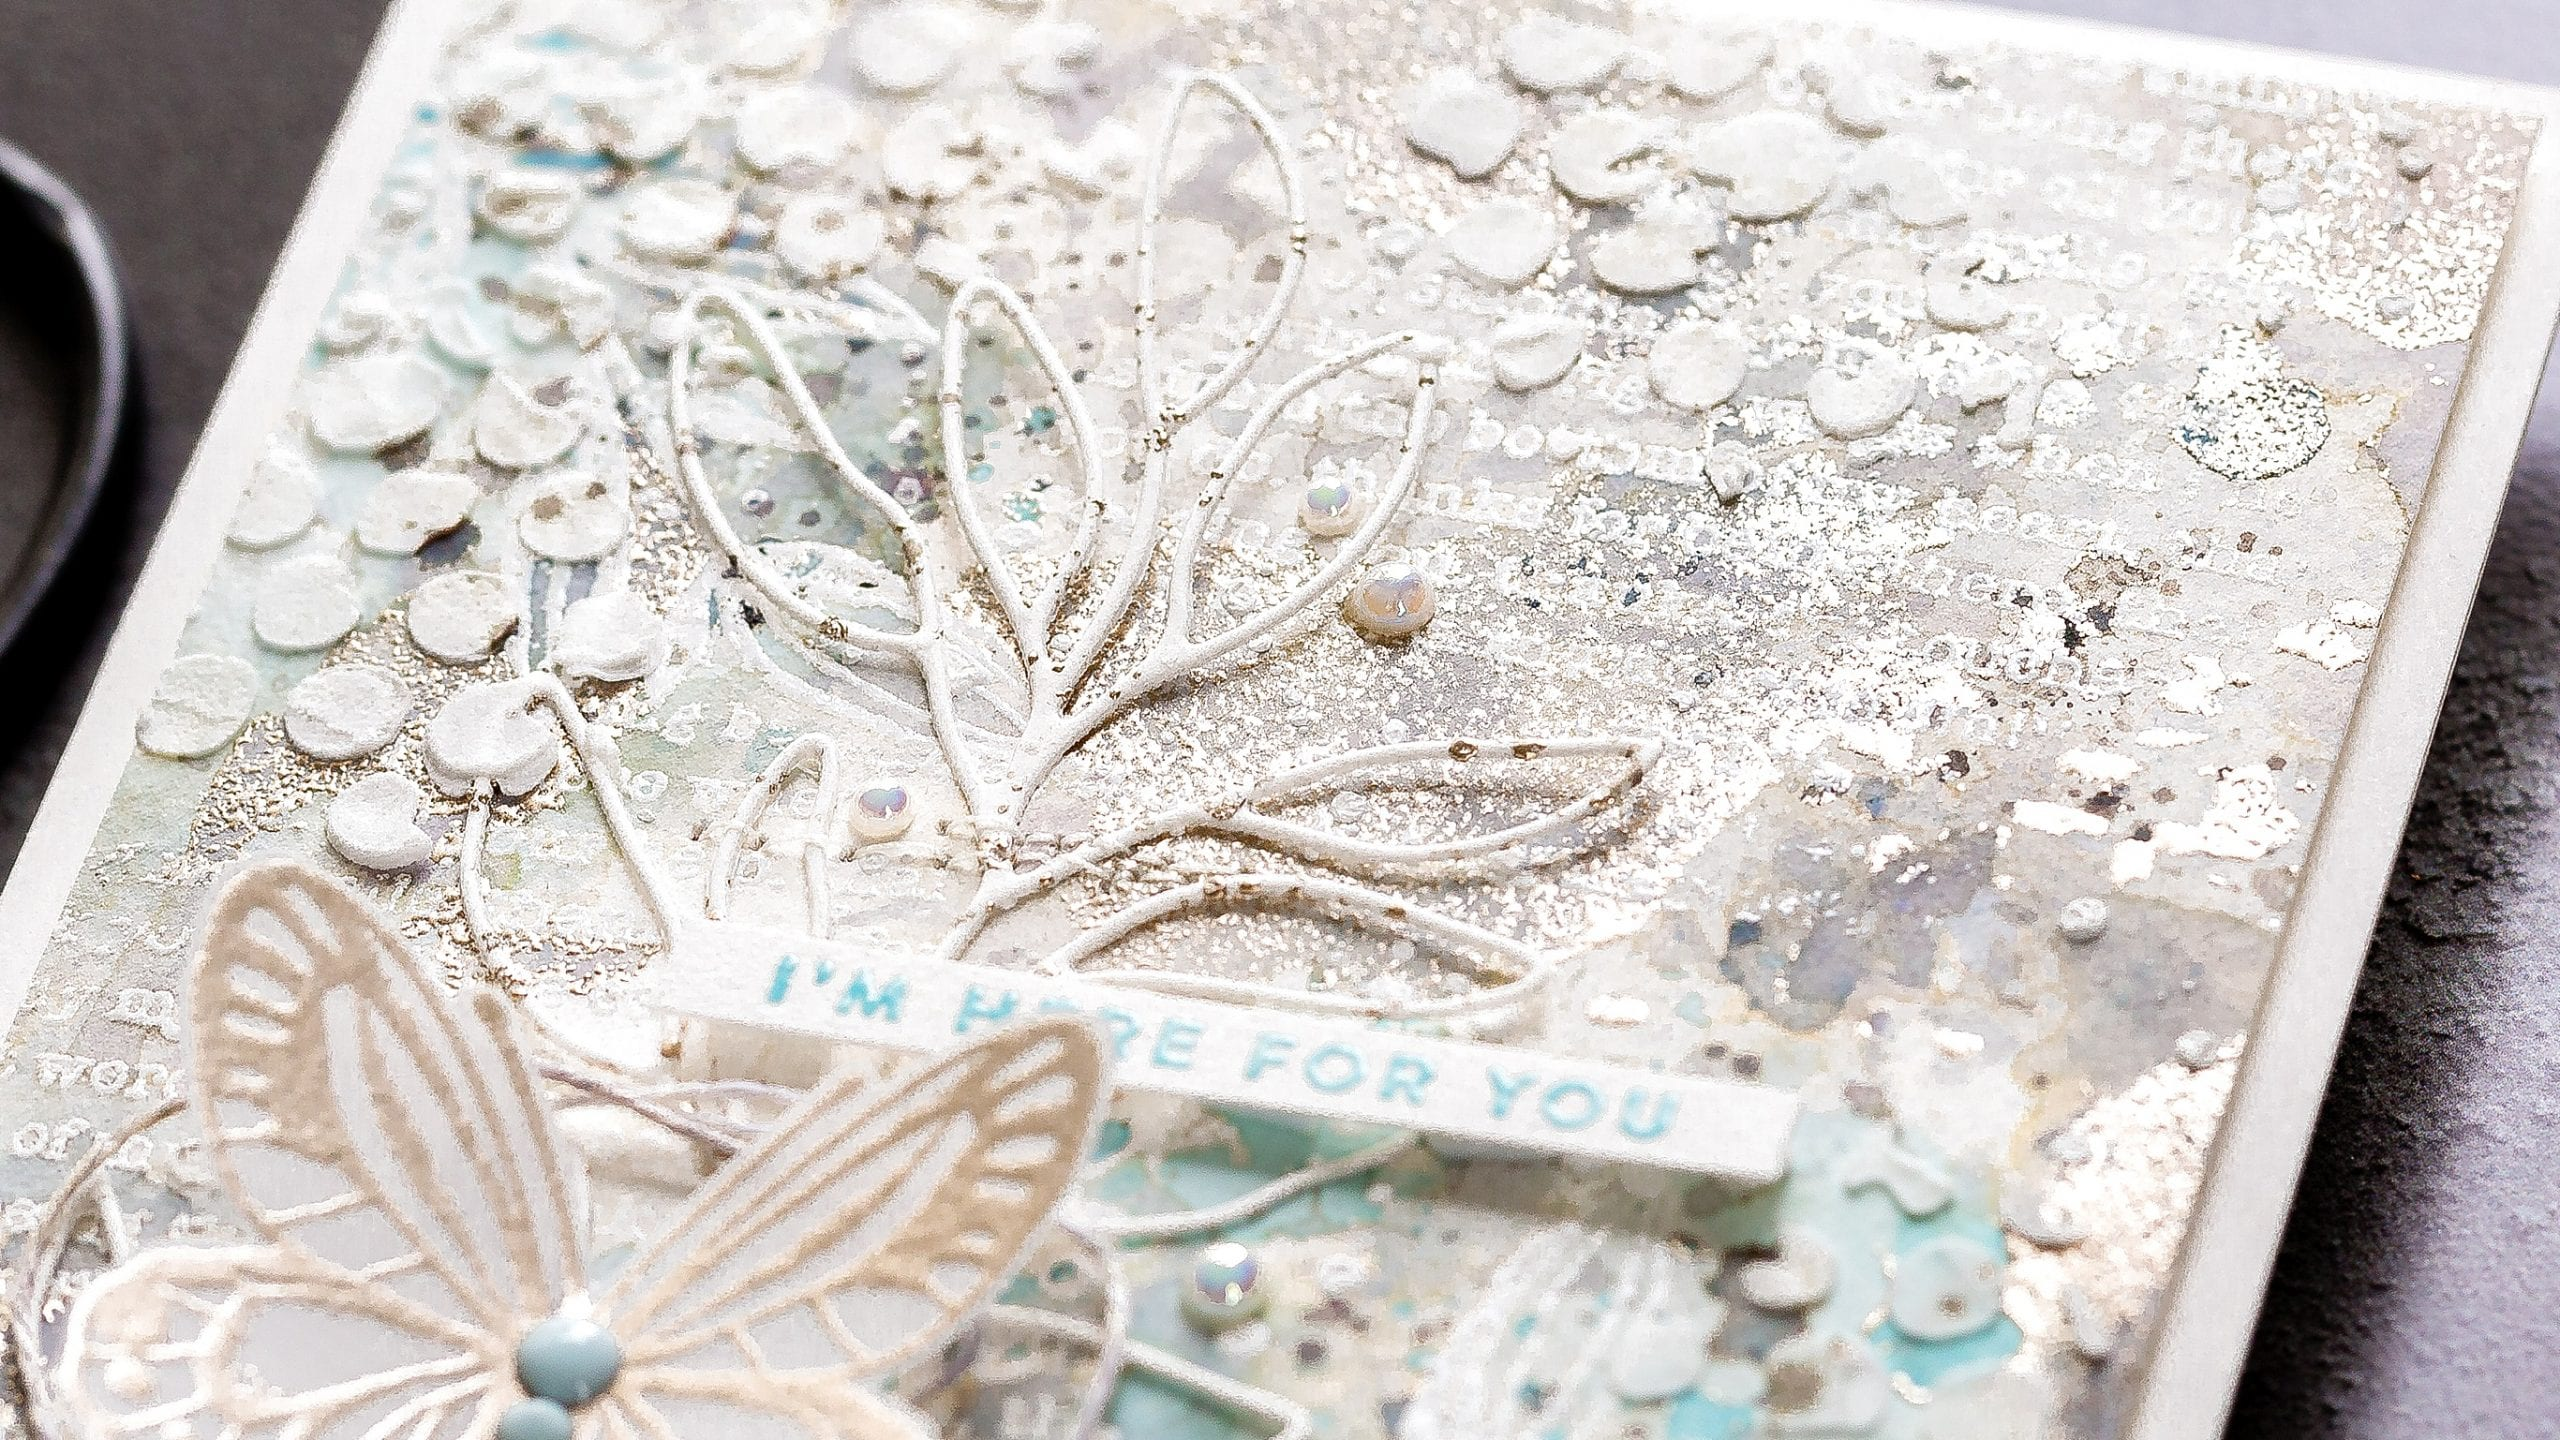 Tutorial exploring mixed media - heat embossing, stencils, texture paste, die-cuts, watery layers etc. Handmade card by Debby Hughes using supplies from Simon Says Stamp and Tim Holtz #homemade #mixedmedia